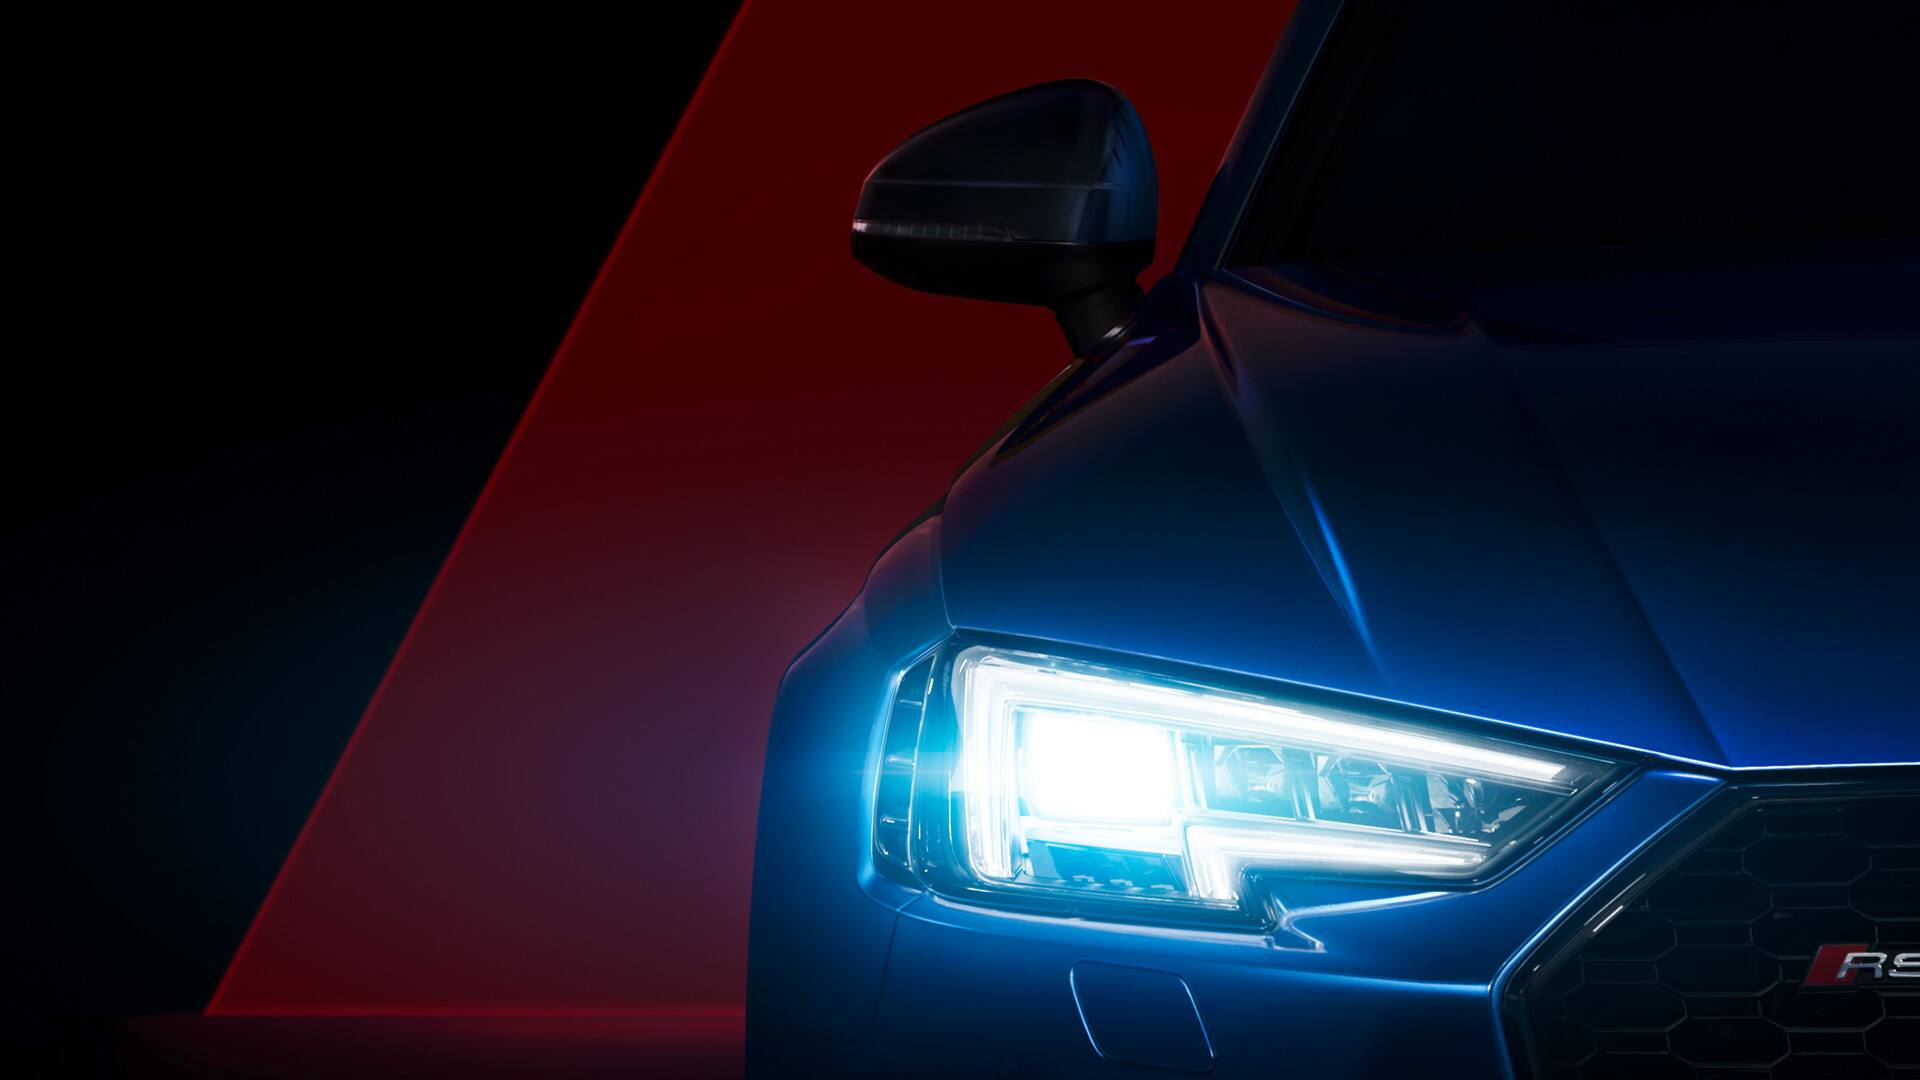 The Audi Matrix LED headlights, developed for the 24 Hours of Le Mans, search far into the distance to turn night into day. Precise illumination with low energy consumption, the intelligent technology detects oncoming vehicles and turns off potentially blinding LEDs in a fraction of a second, all without interrupting the illumination of the road ahead.